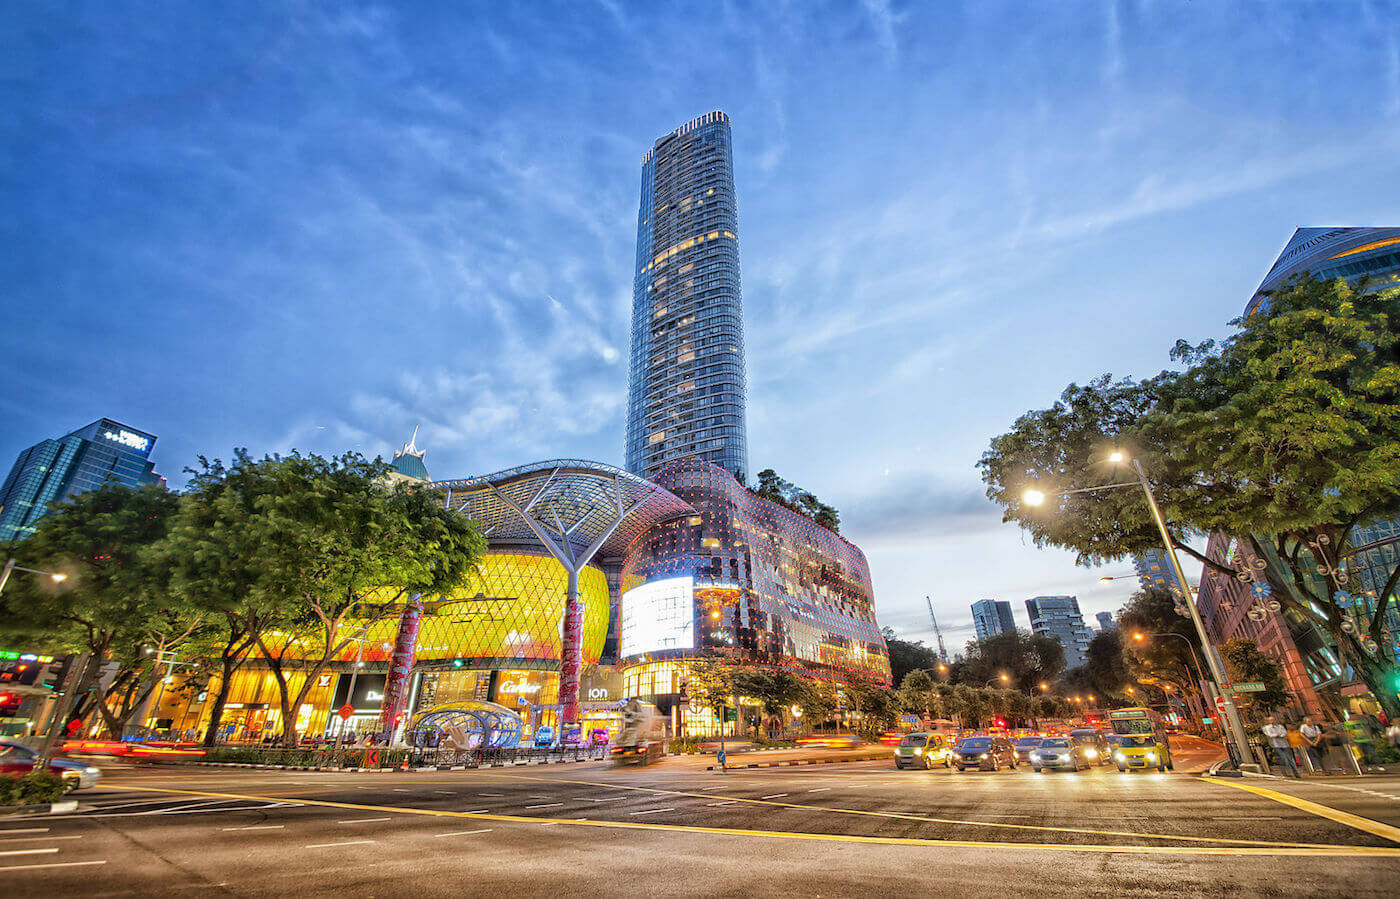 ION Orchard on Orchard Road. Source: Chen Si Yuan